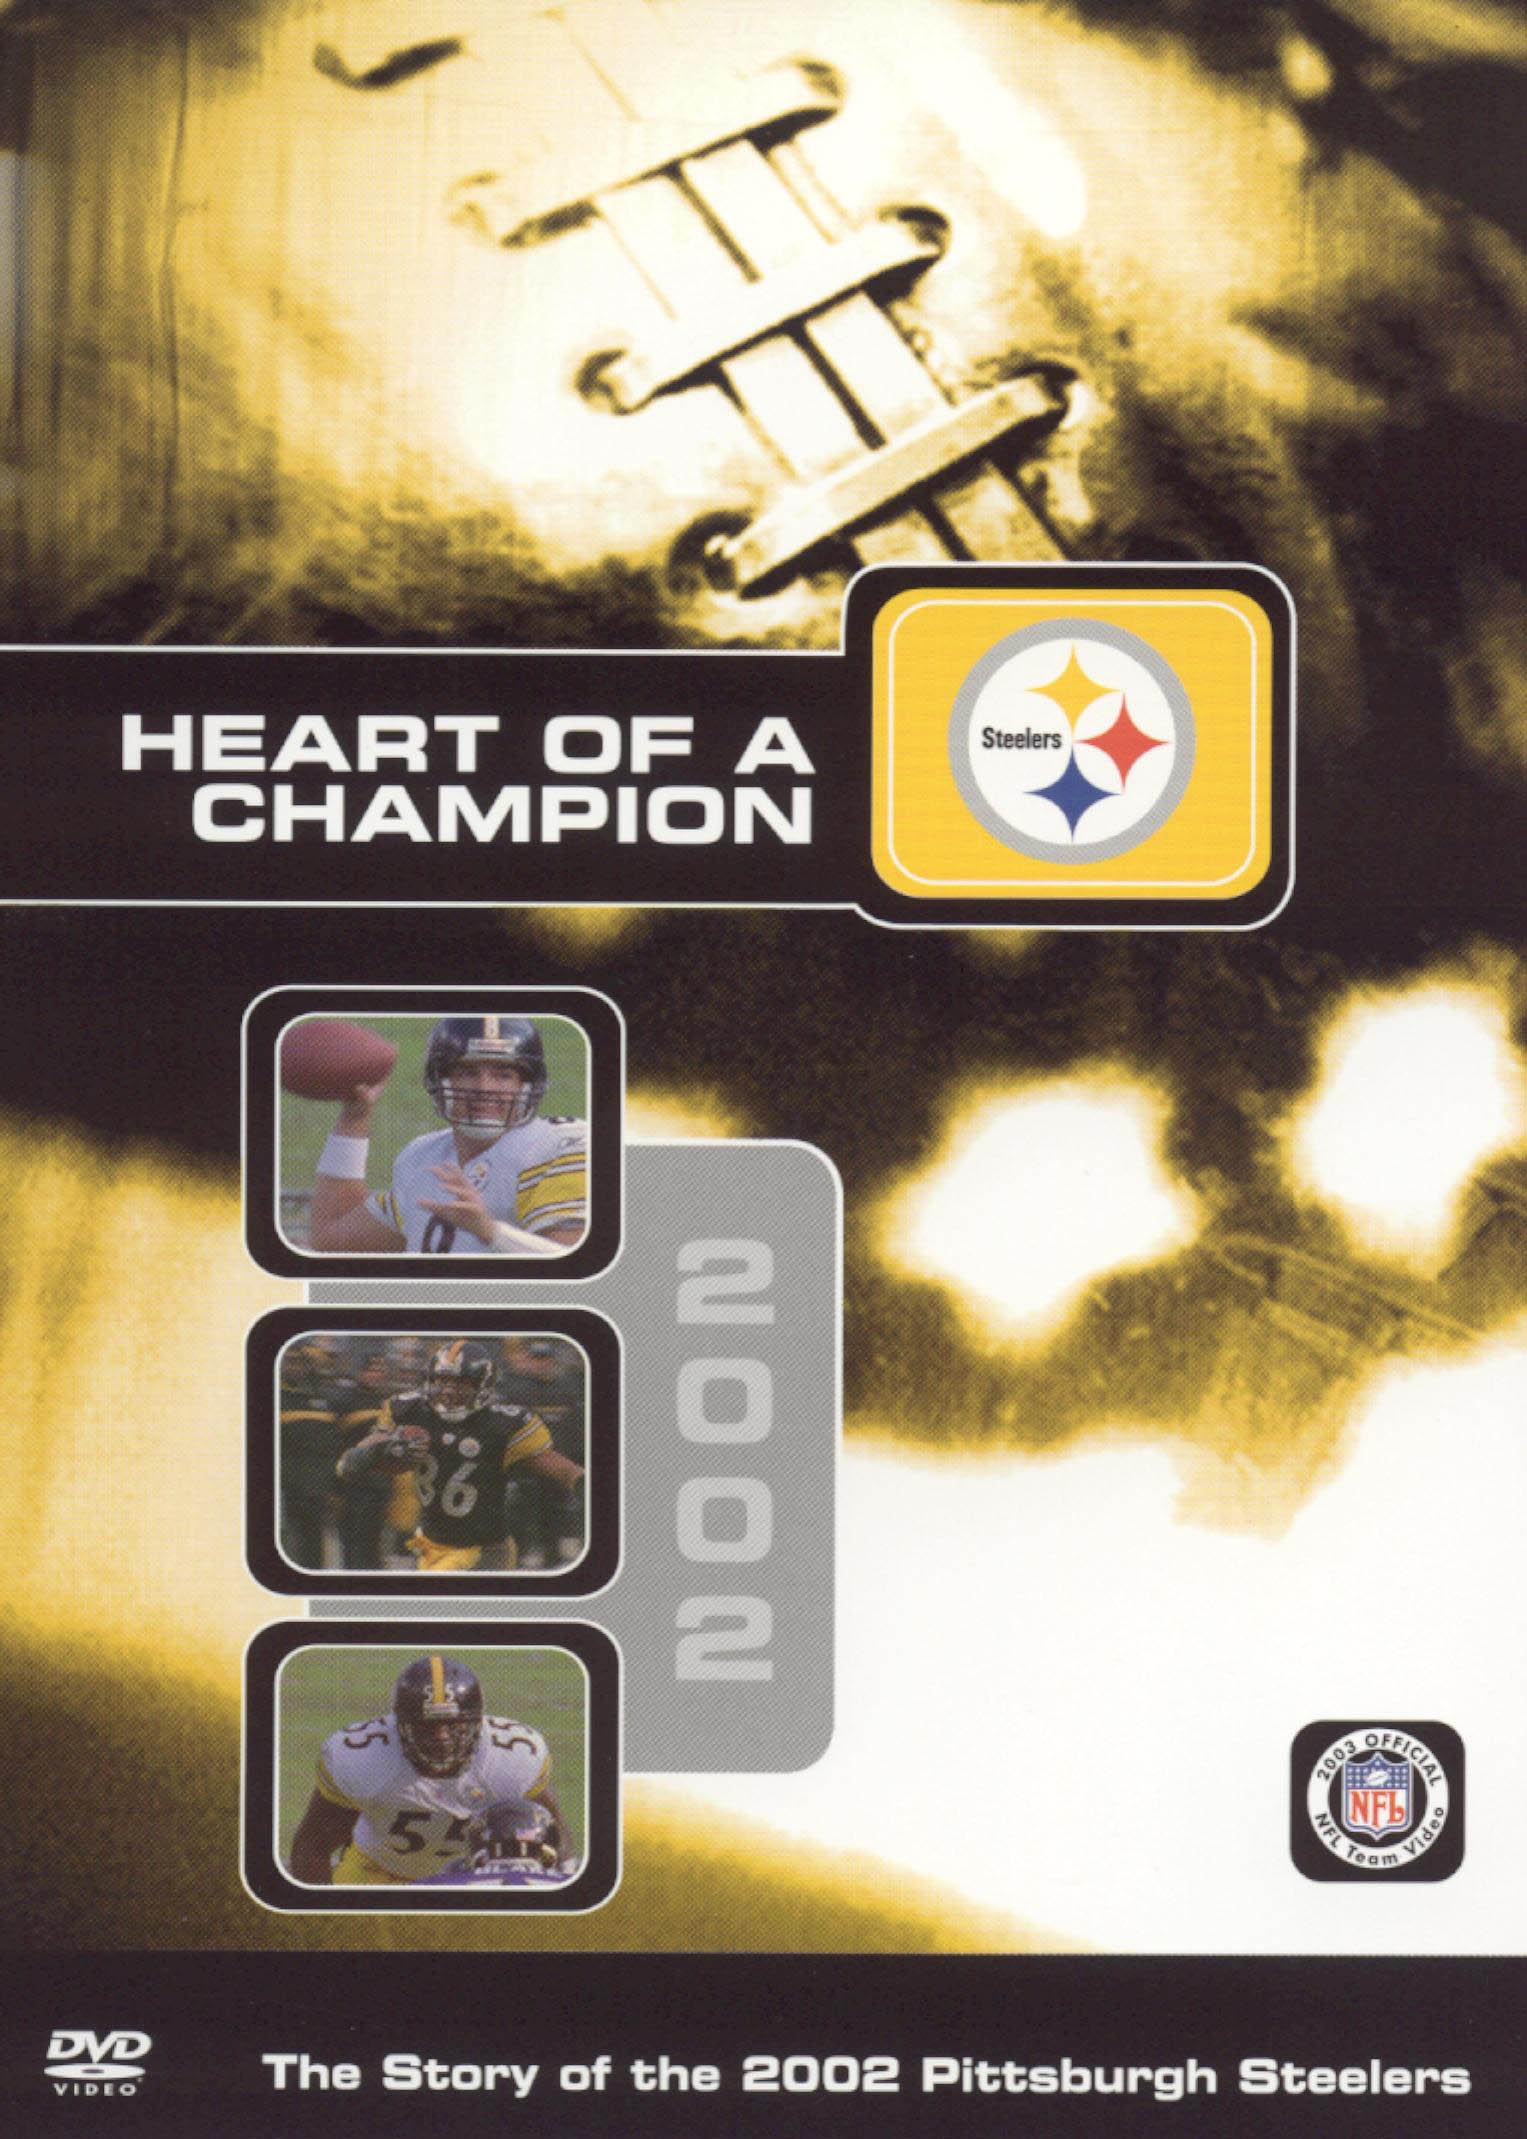 NFL: 2002 Pittsburgh Steelers Team Video - Heart of a Champion